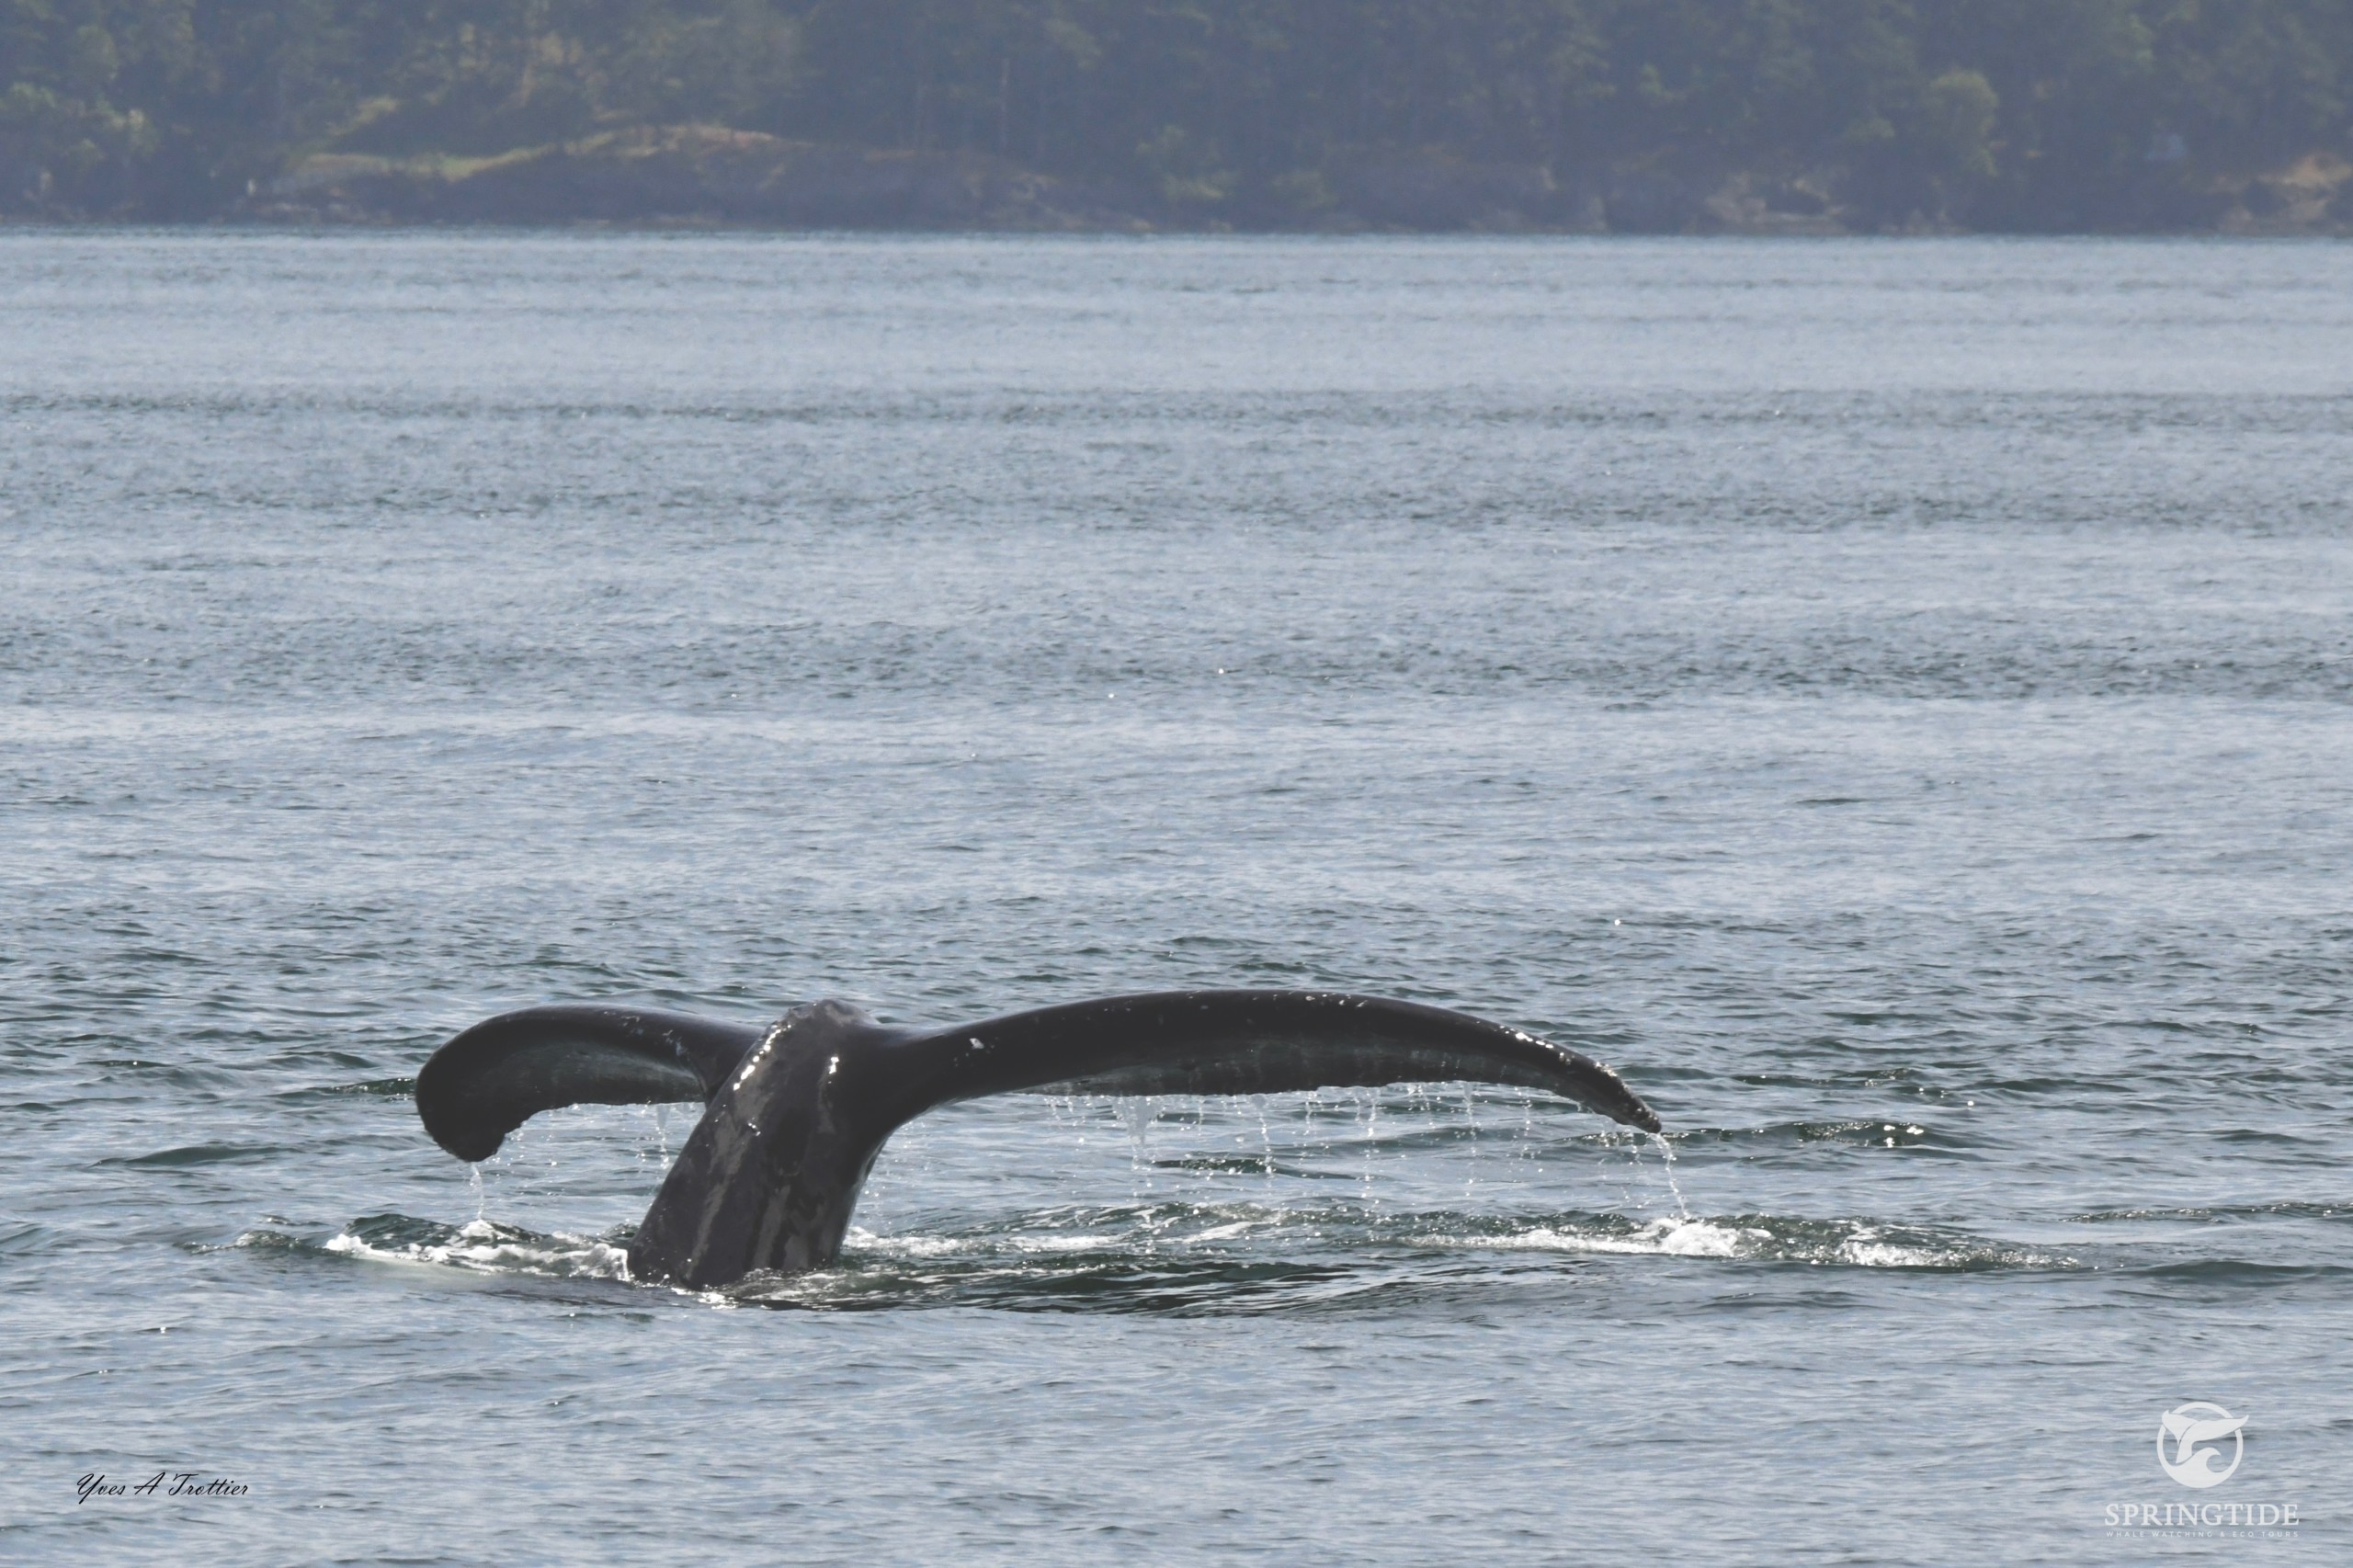 Humpback Whale going to a deep dive. Picture taken by SpringTide Crew.